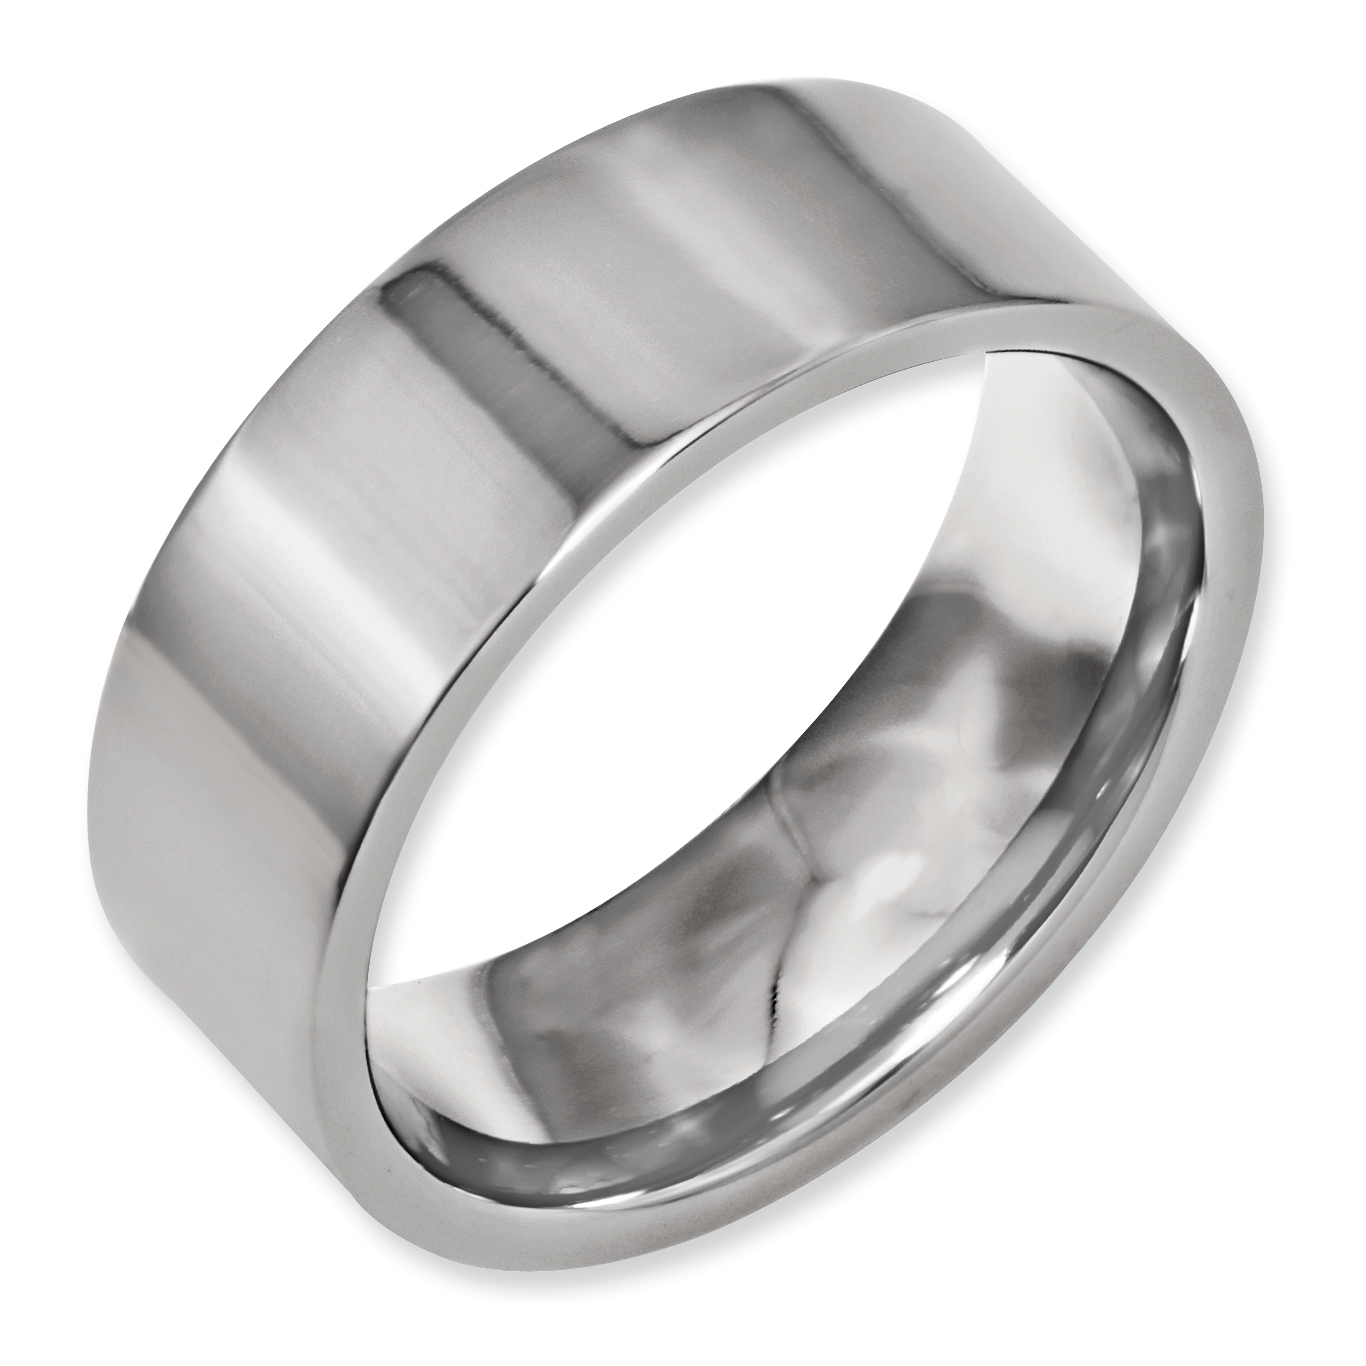 Titanium Flat 8mm Wedding Ring Band Size 9.50 Classic Fashion Jewelry Gifts For Women For Her - image 3 of 7